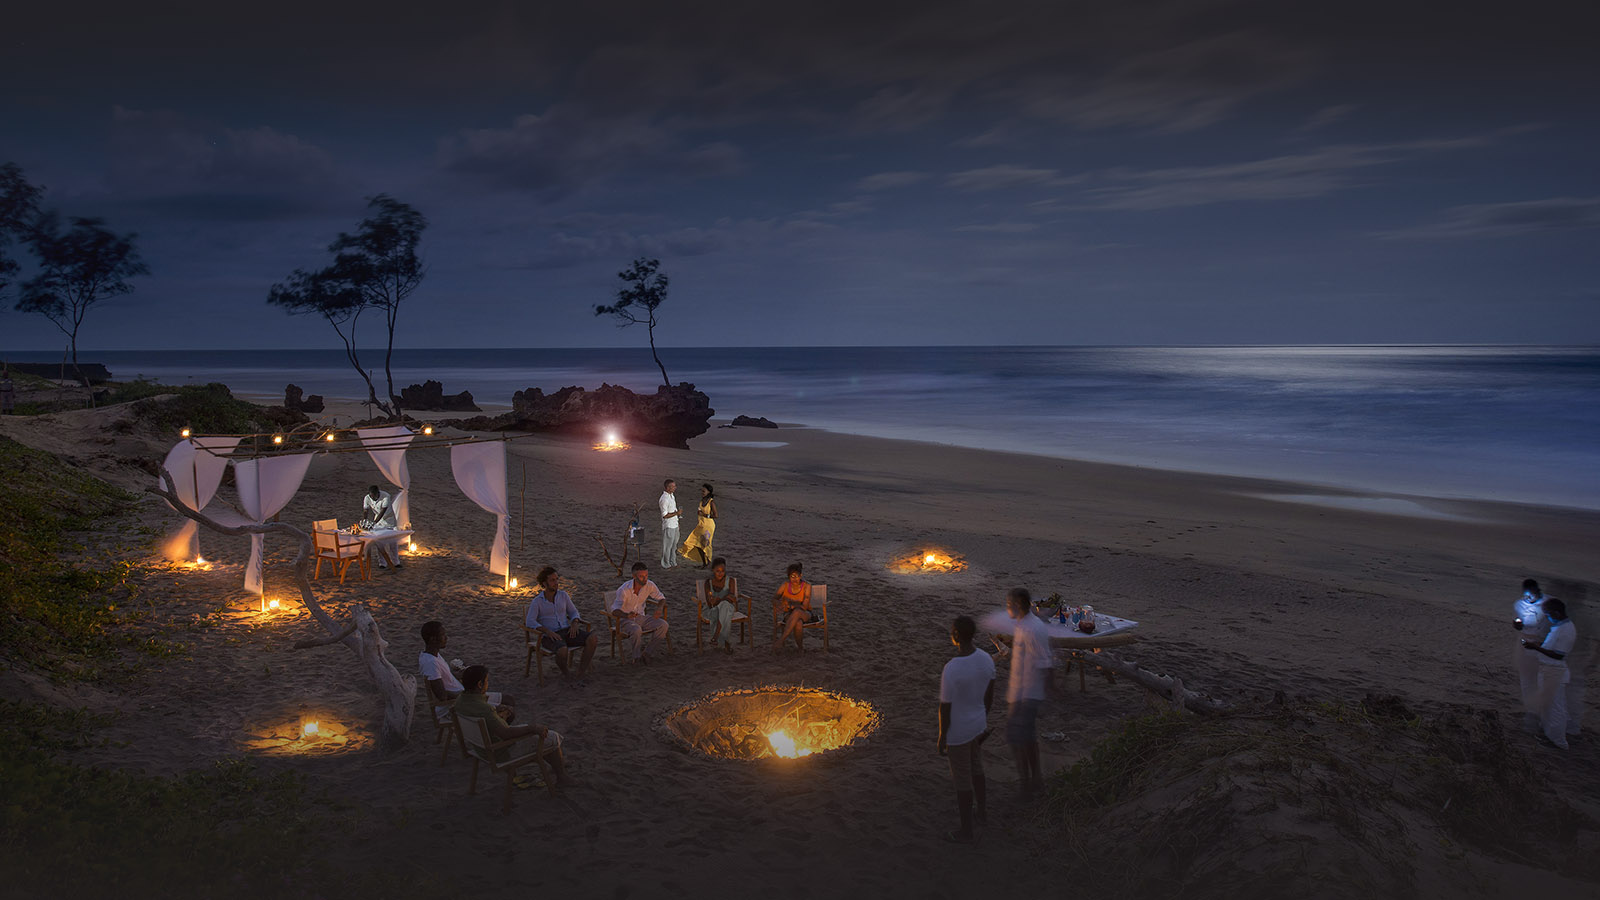 diamonds mequfi beach resort mozambique-lodges-pemba-zambia-in-style-paradise-pristine-beach-camp-fire